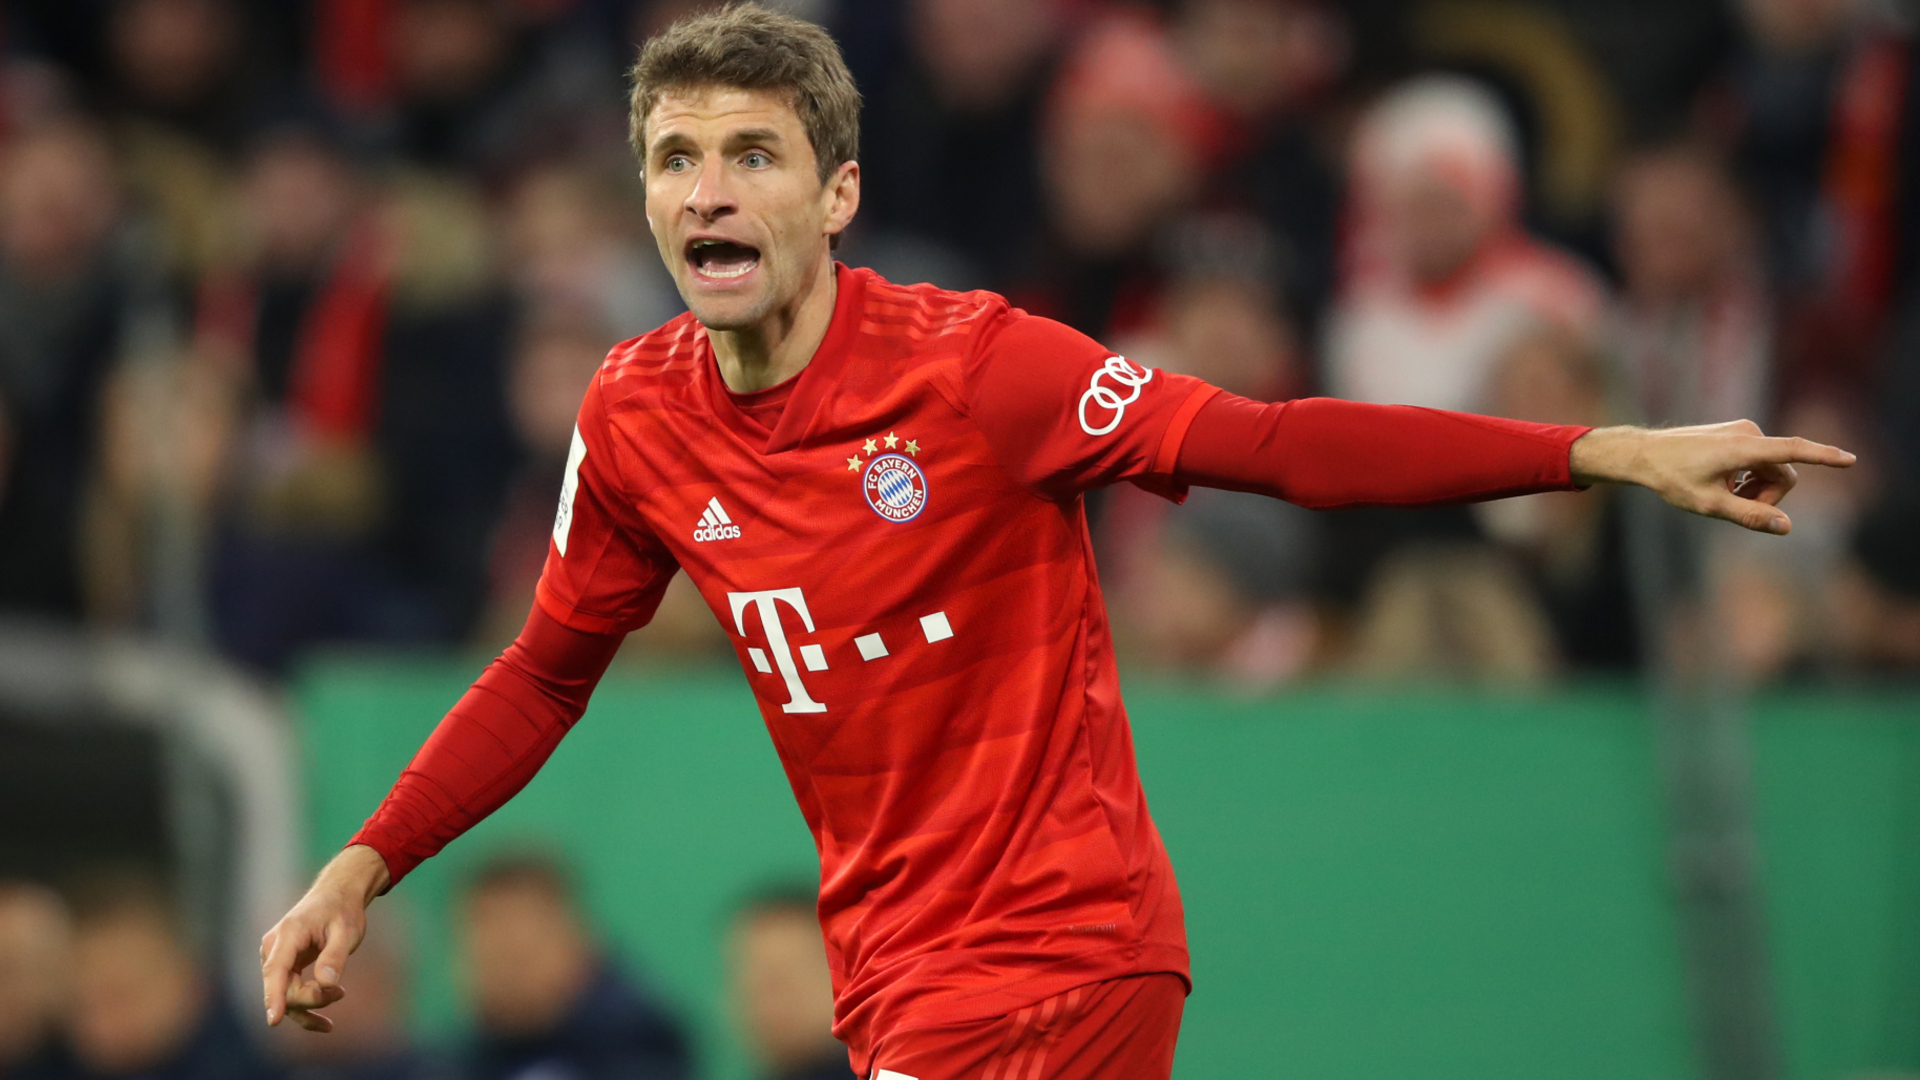 Dortmund v Bayern: How a reborn Thomas Muller became the heartbeat of Flick's set-up